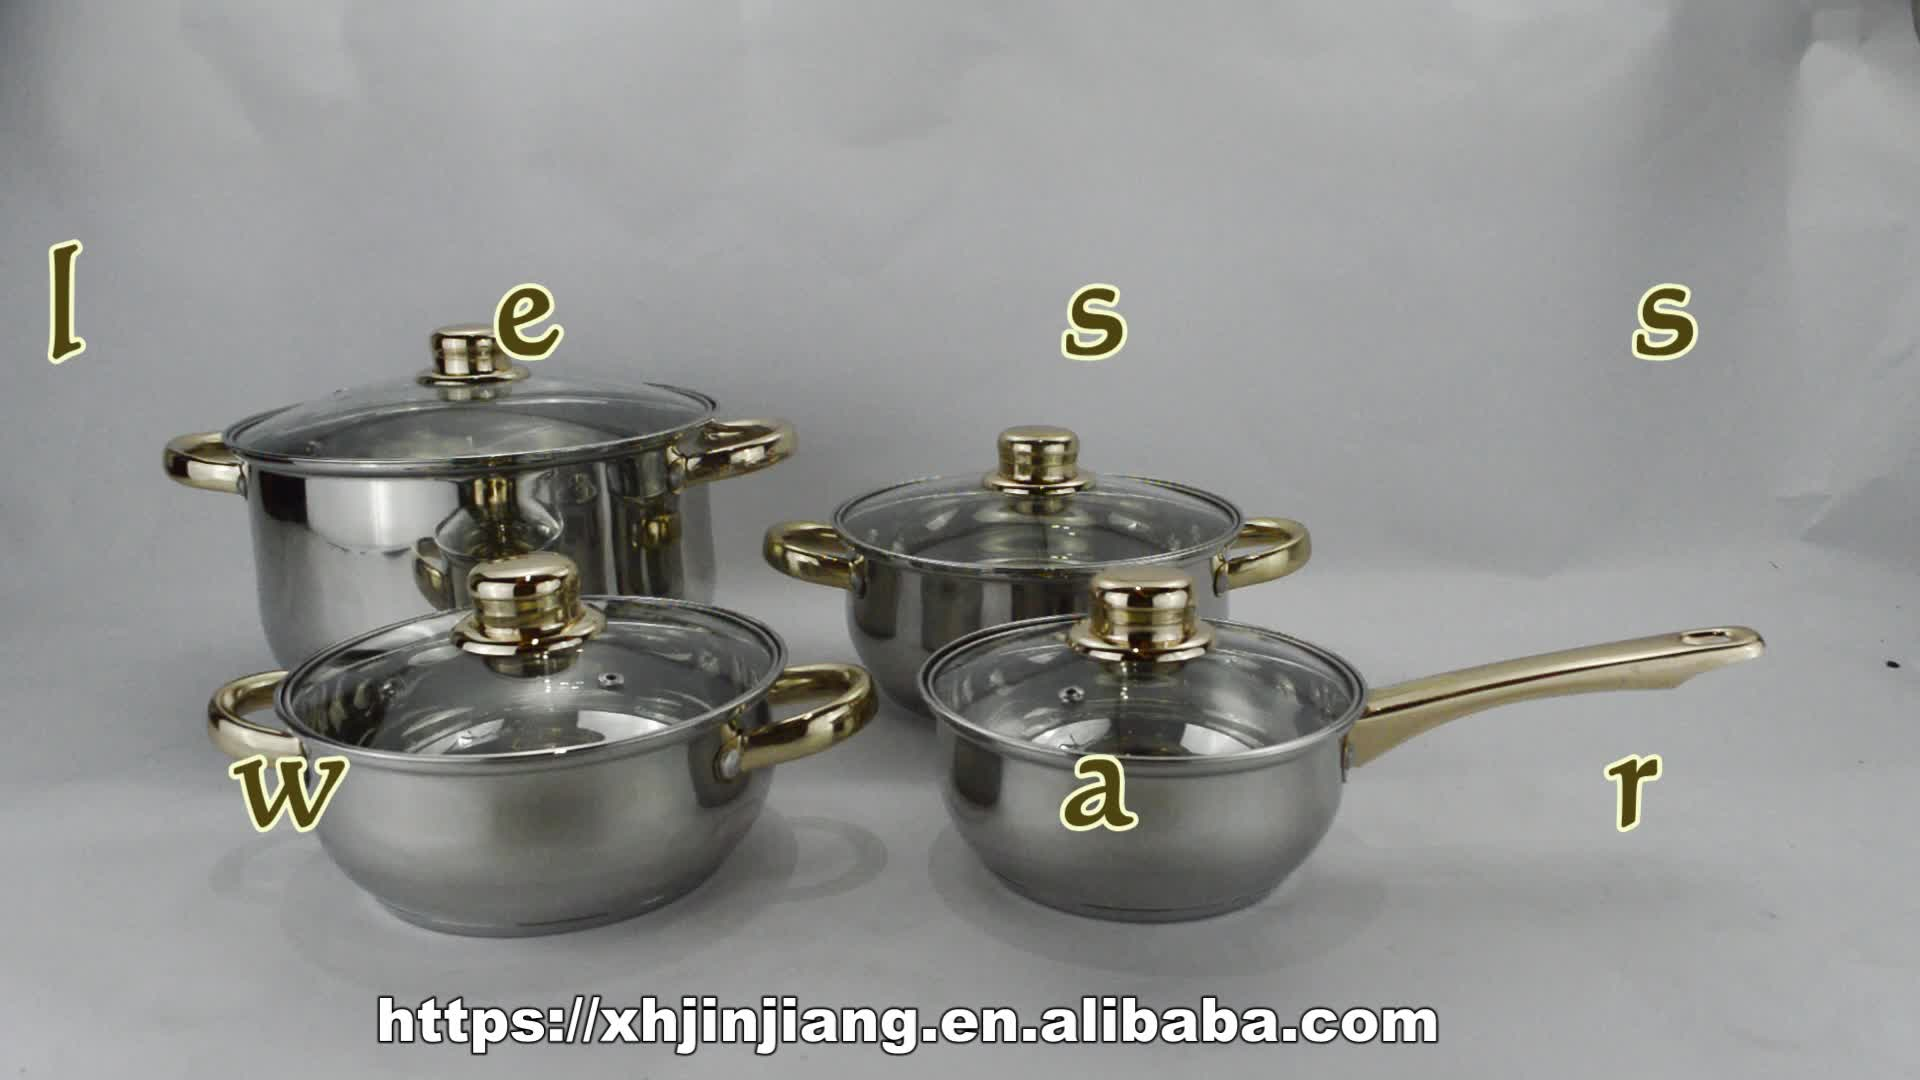 JJs-cw314 8pcs chinese stainless steel cookware set